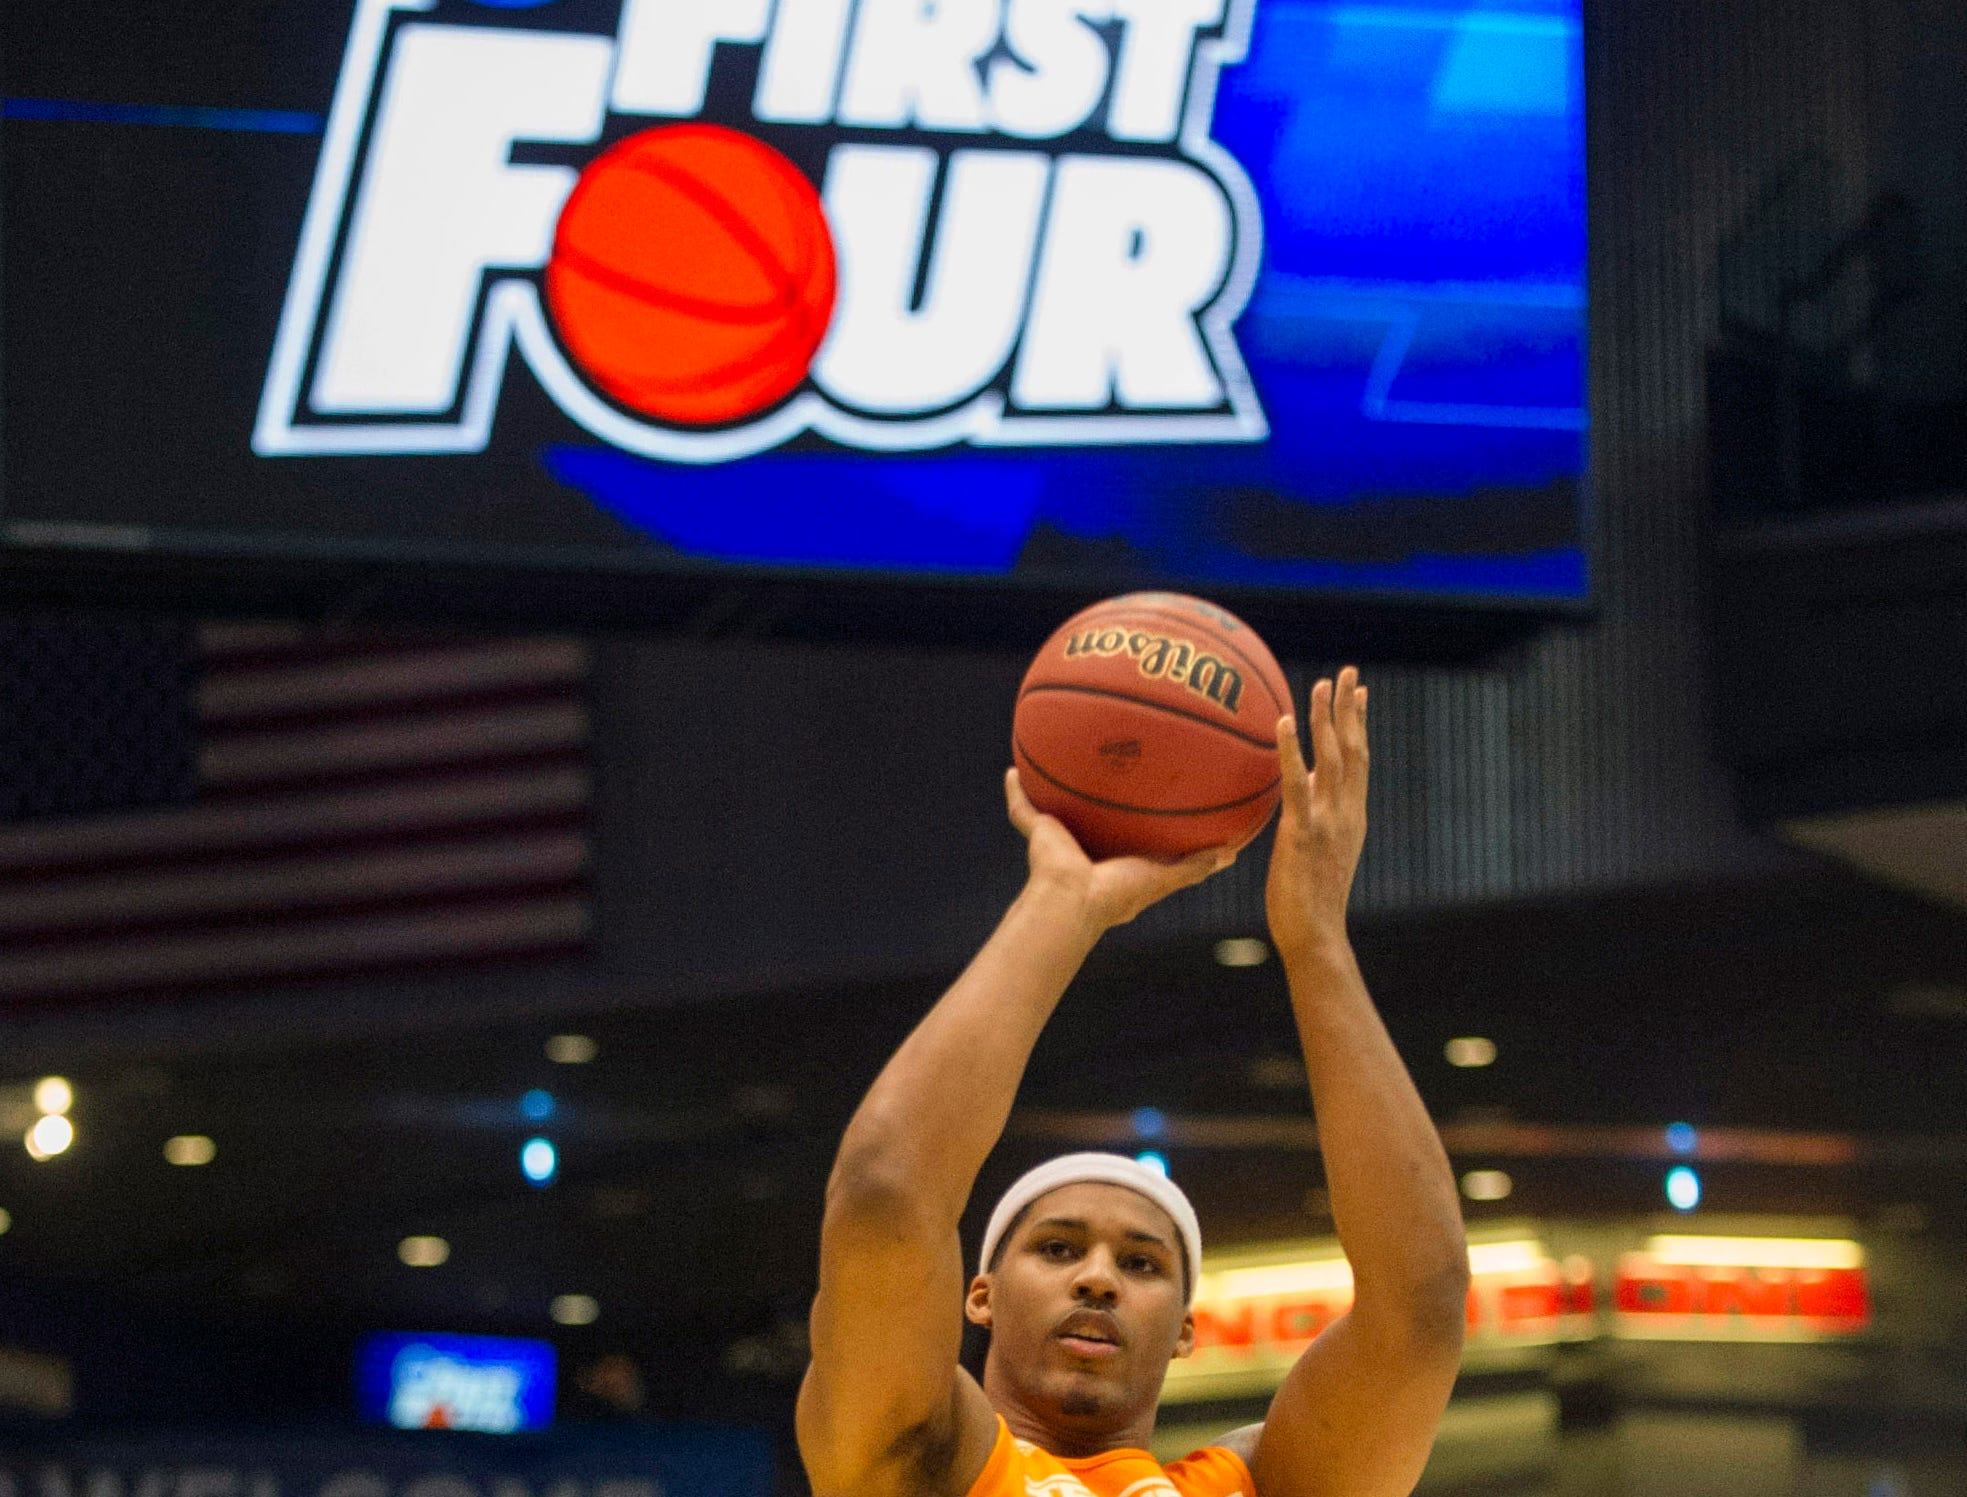 Tennessee forward Jarnell Stokes (5) practices shooting three-pointers while teammate Quinton Chievous (31) looks on during an open practice before Tennessee's NCAA tournament first round game against Iowa at the University of Dayton Arena in Dayton, Ohio on Tuesday, March 18, 2014.